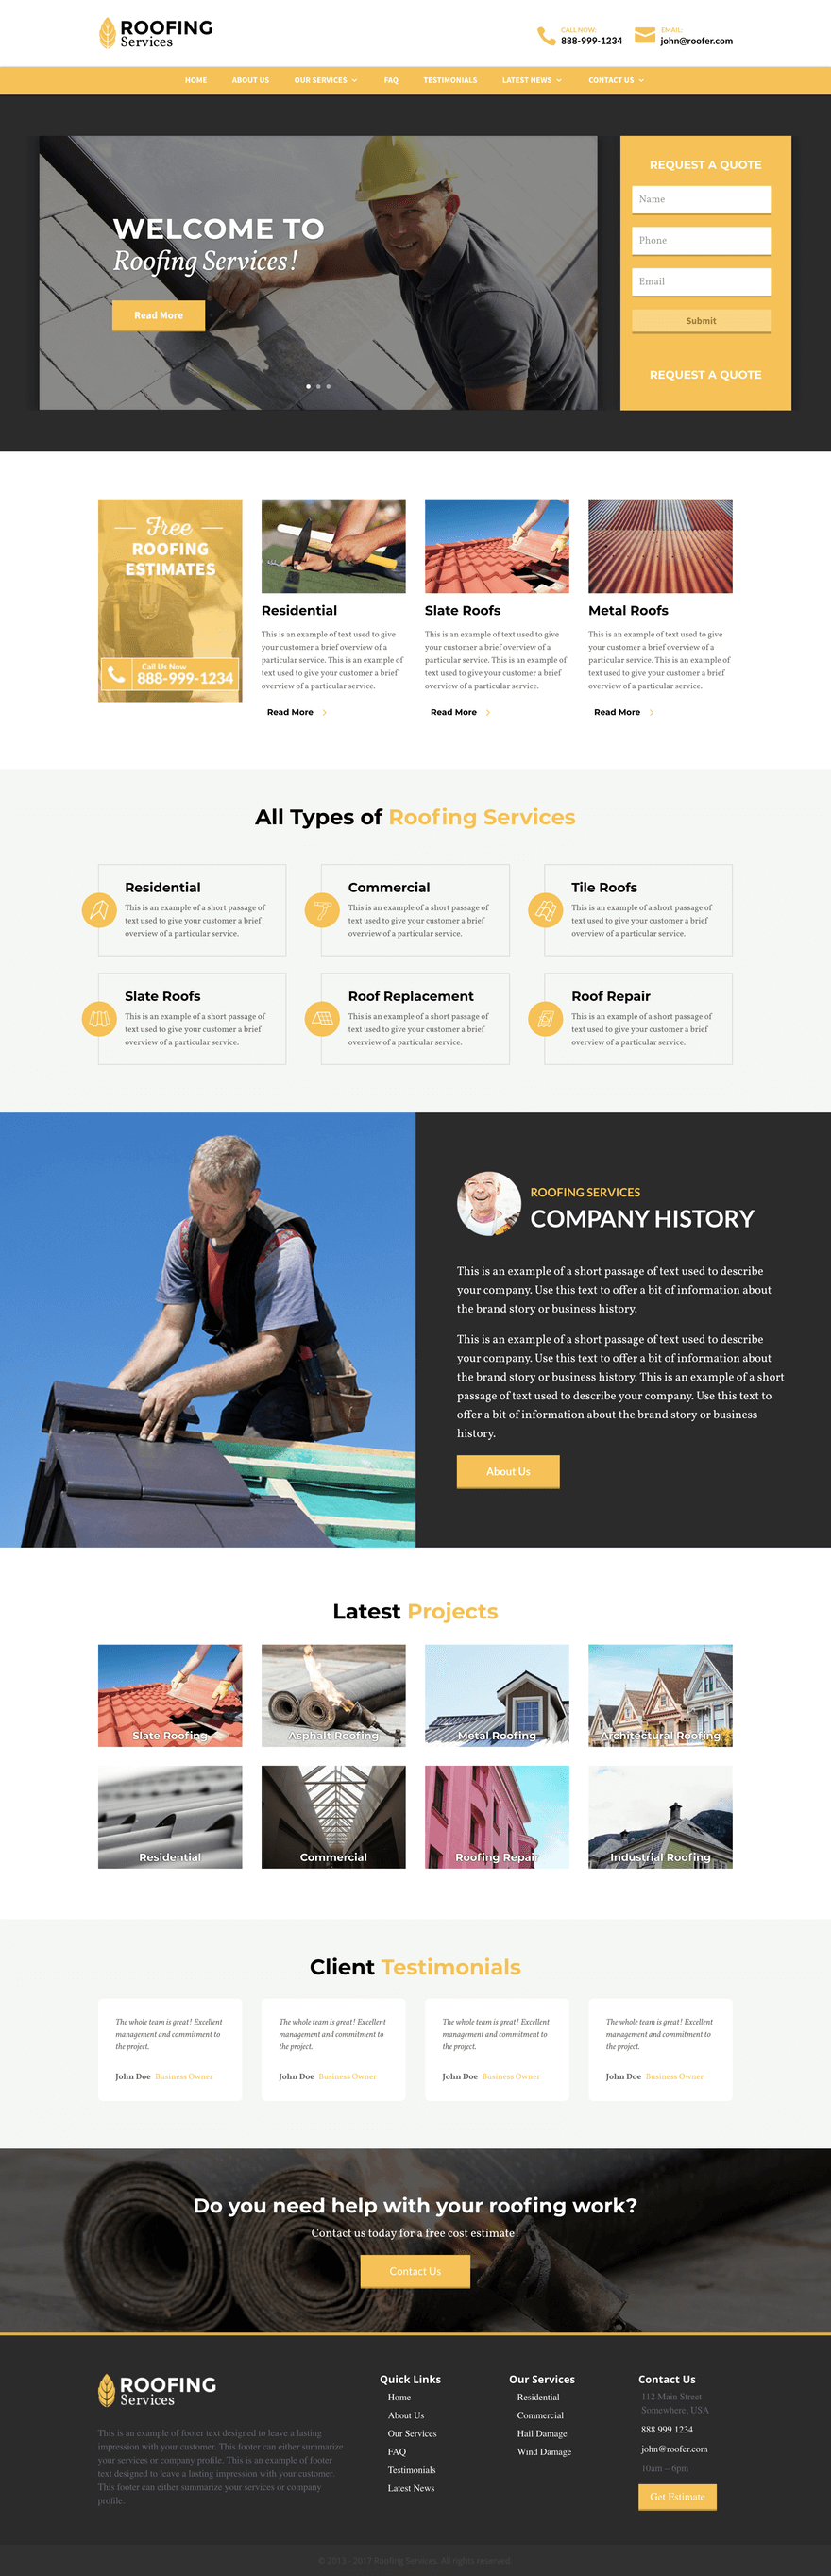 roofing-divi-child-theme